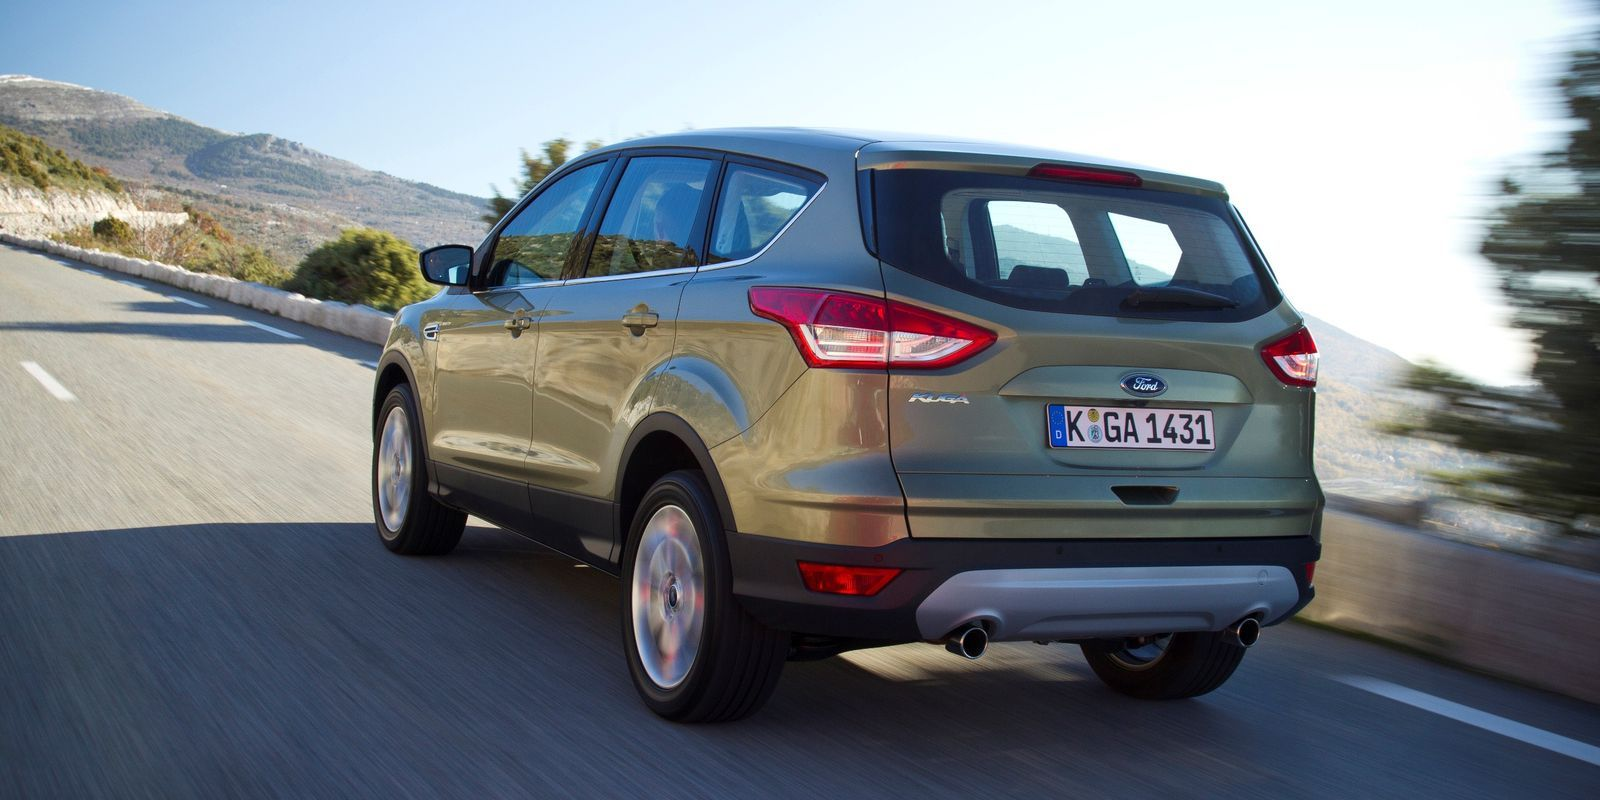 Ford Kuga review, photos & deals   Ford kuga, Ford, Automobile